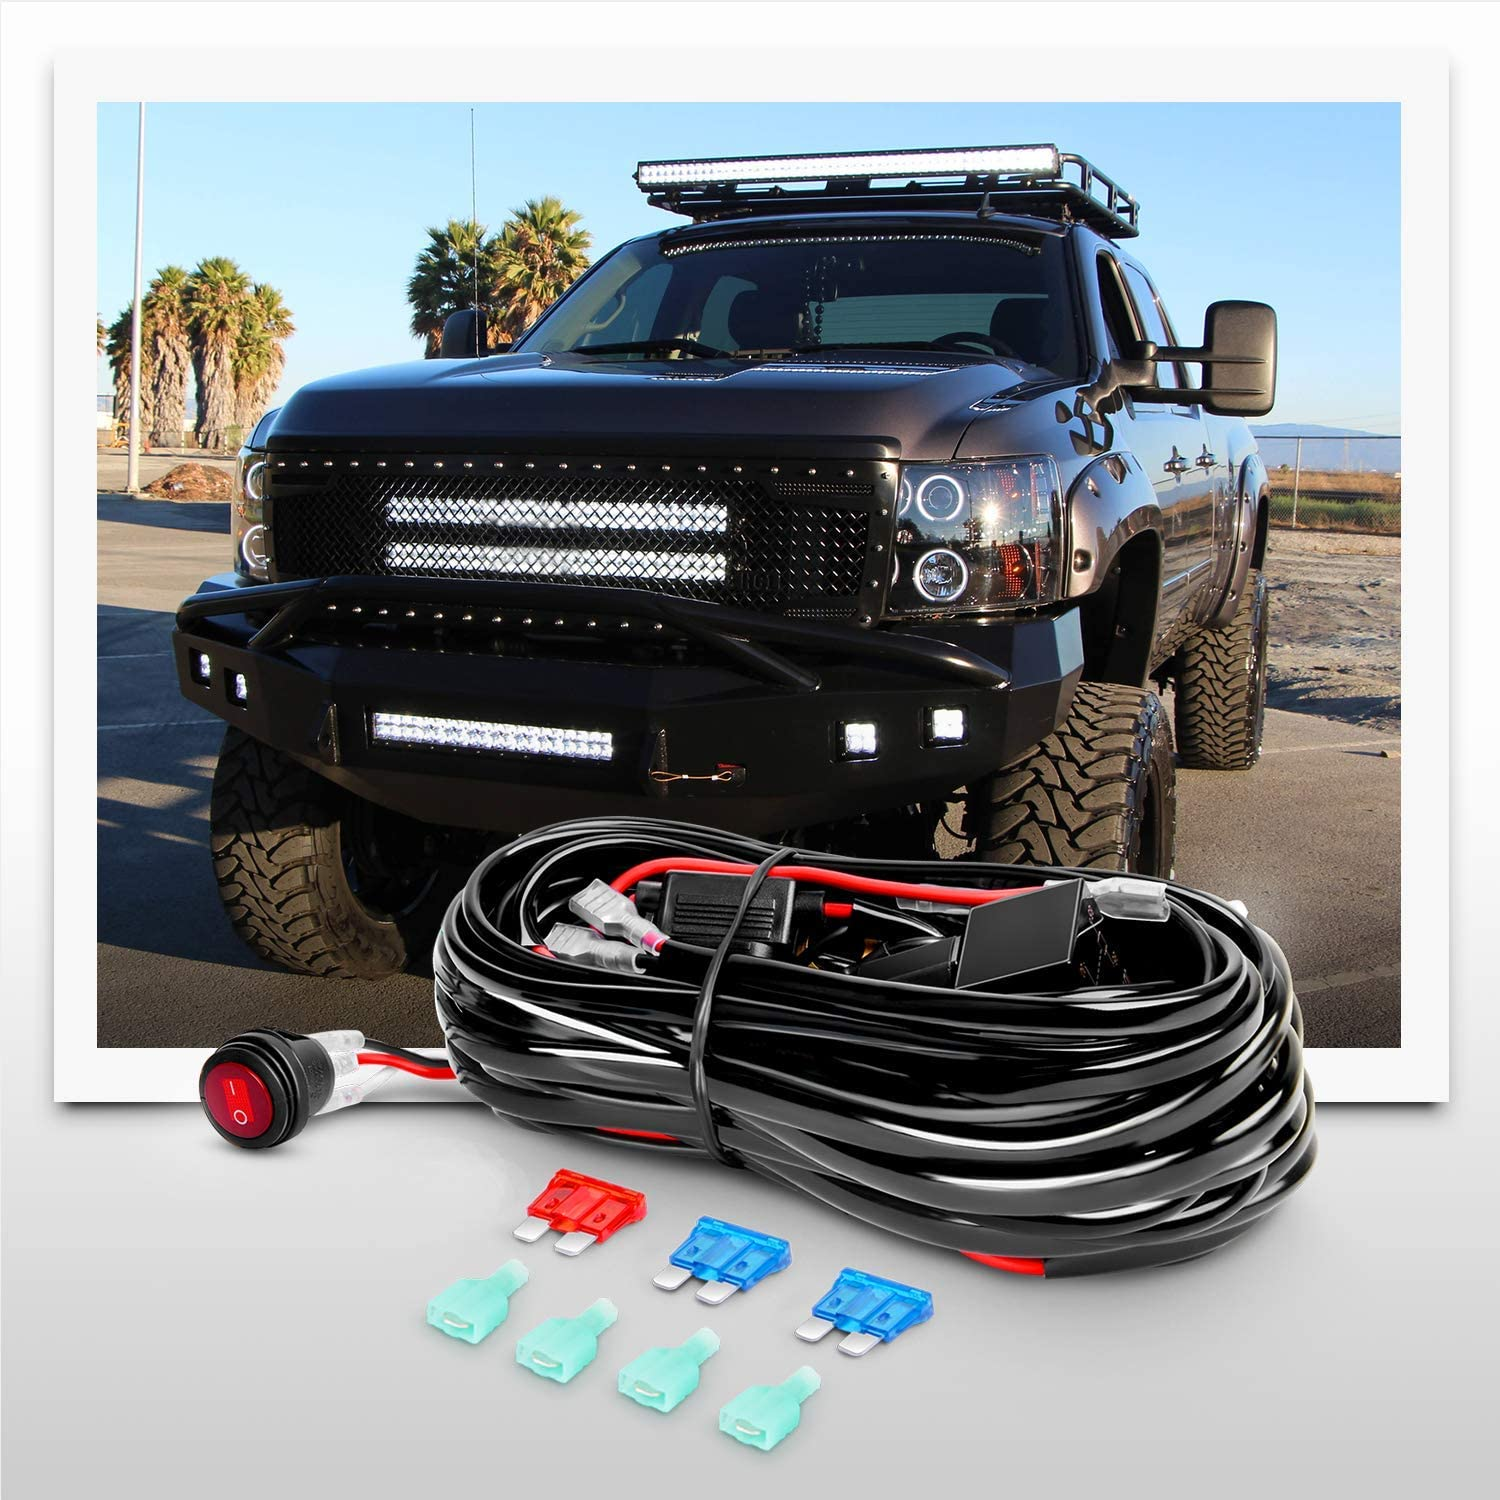 Nilight ZH412 Bar Set, 20 Inch 420W Triple Row Spot Flood Combo Work Driving Lamp, 2Pcs 4 Inch 60W Cube LED Pods Lights with Off-Road Wiring Harness-3 Leads, 2 Year Warranty: Automotive